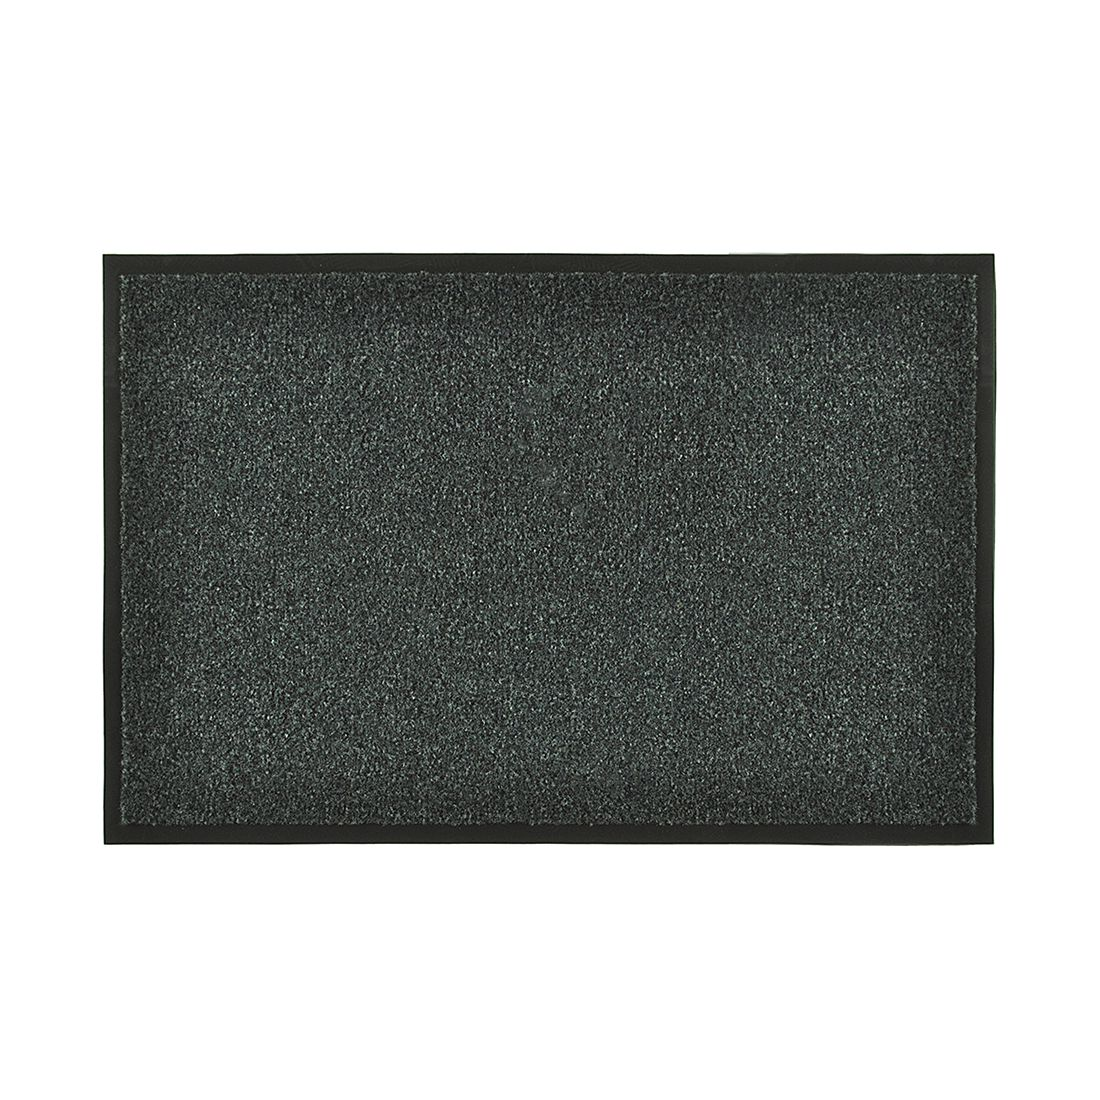 Deurmat Green en Clean - grijs - maat: 60x80cm, Hanse Home Collection